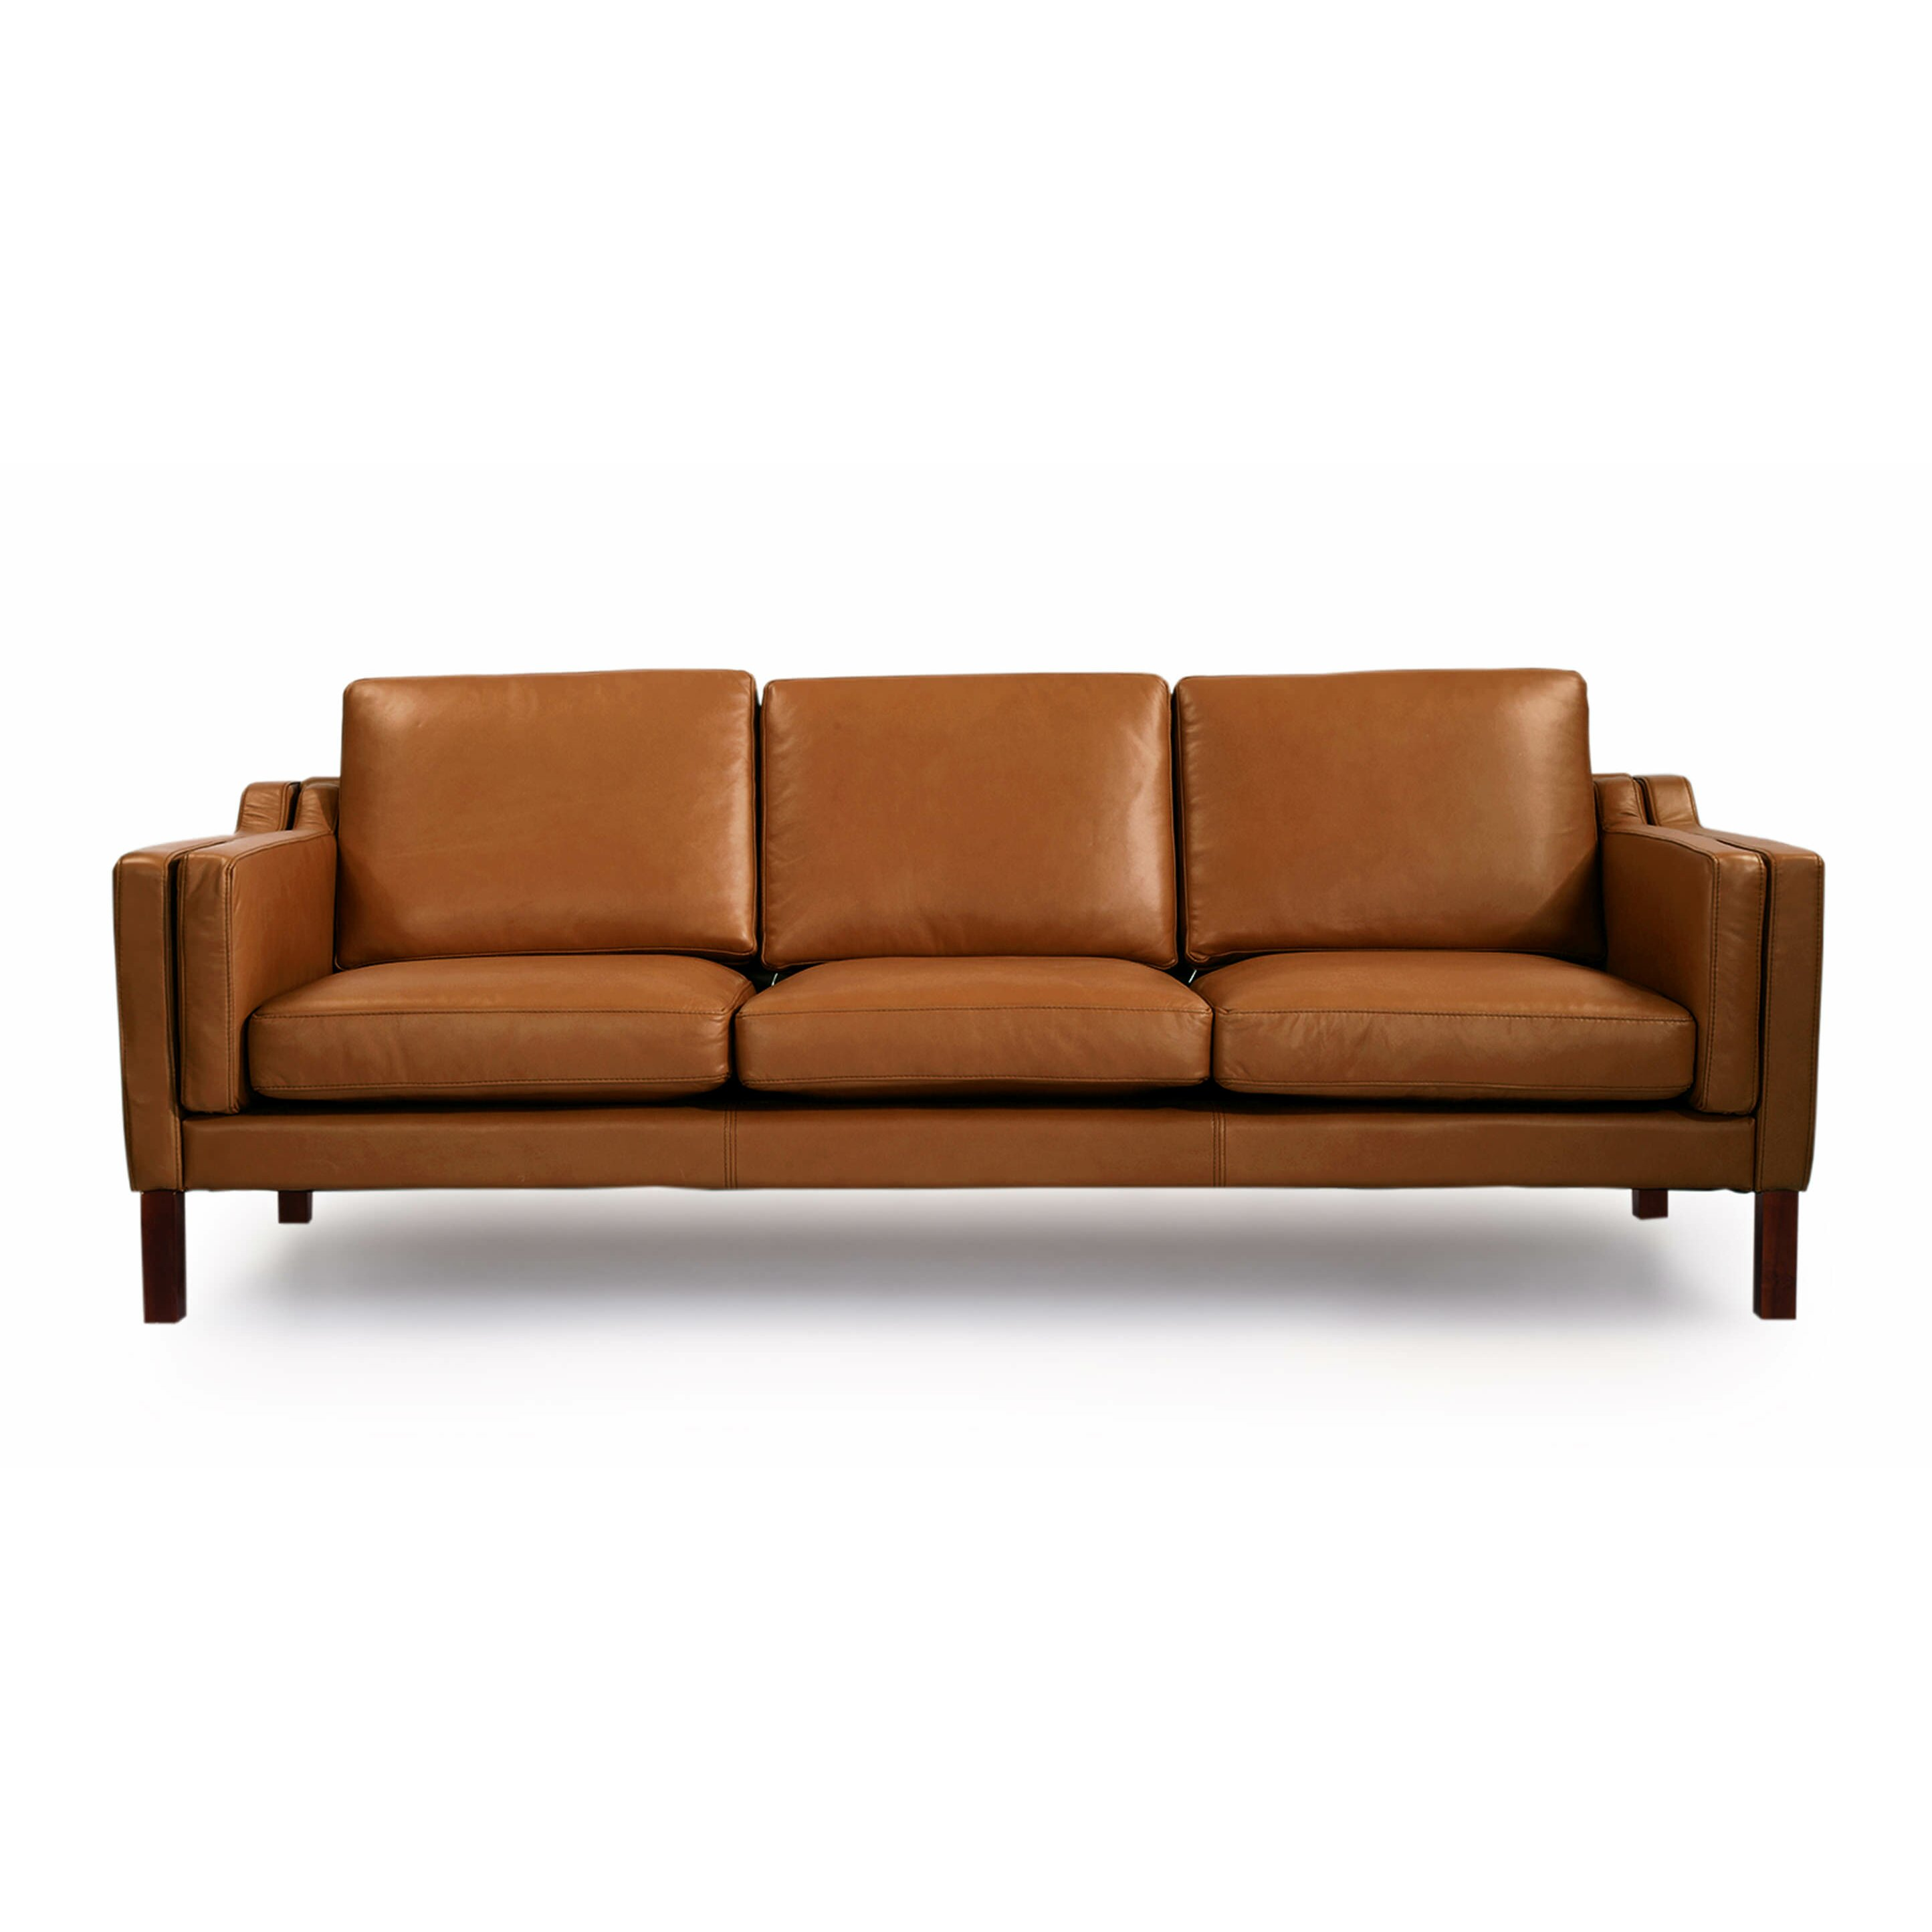 Monroe Mid Century Modern Leather Sofa | Wayfair